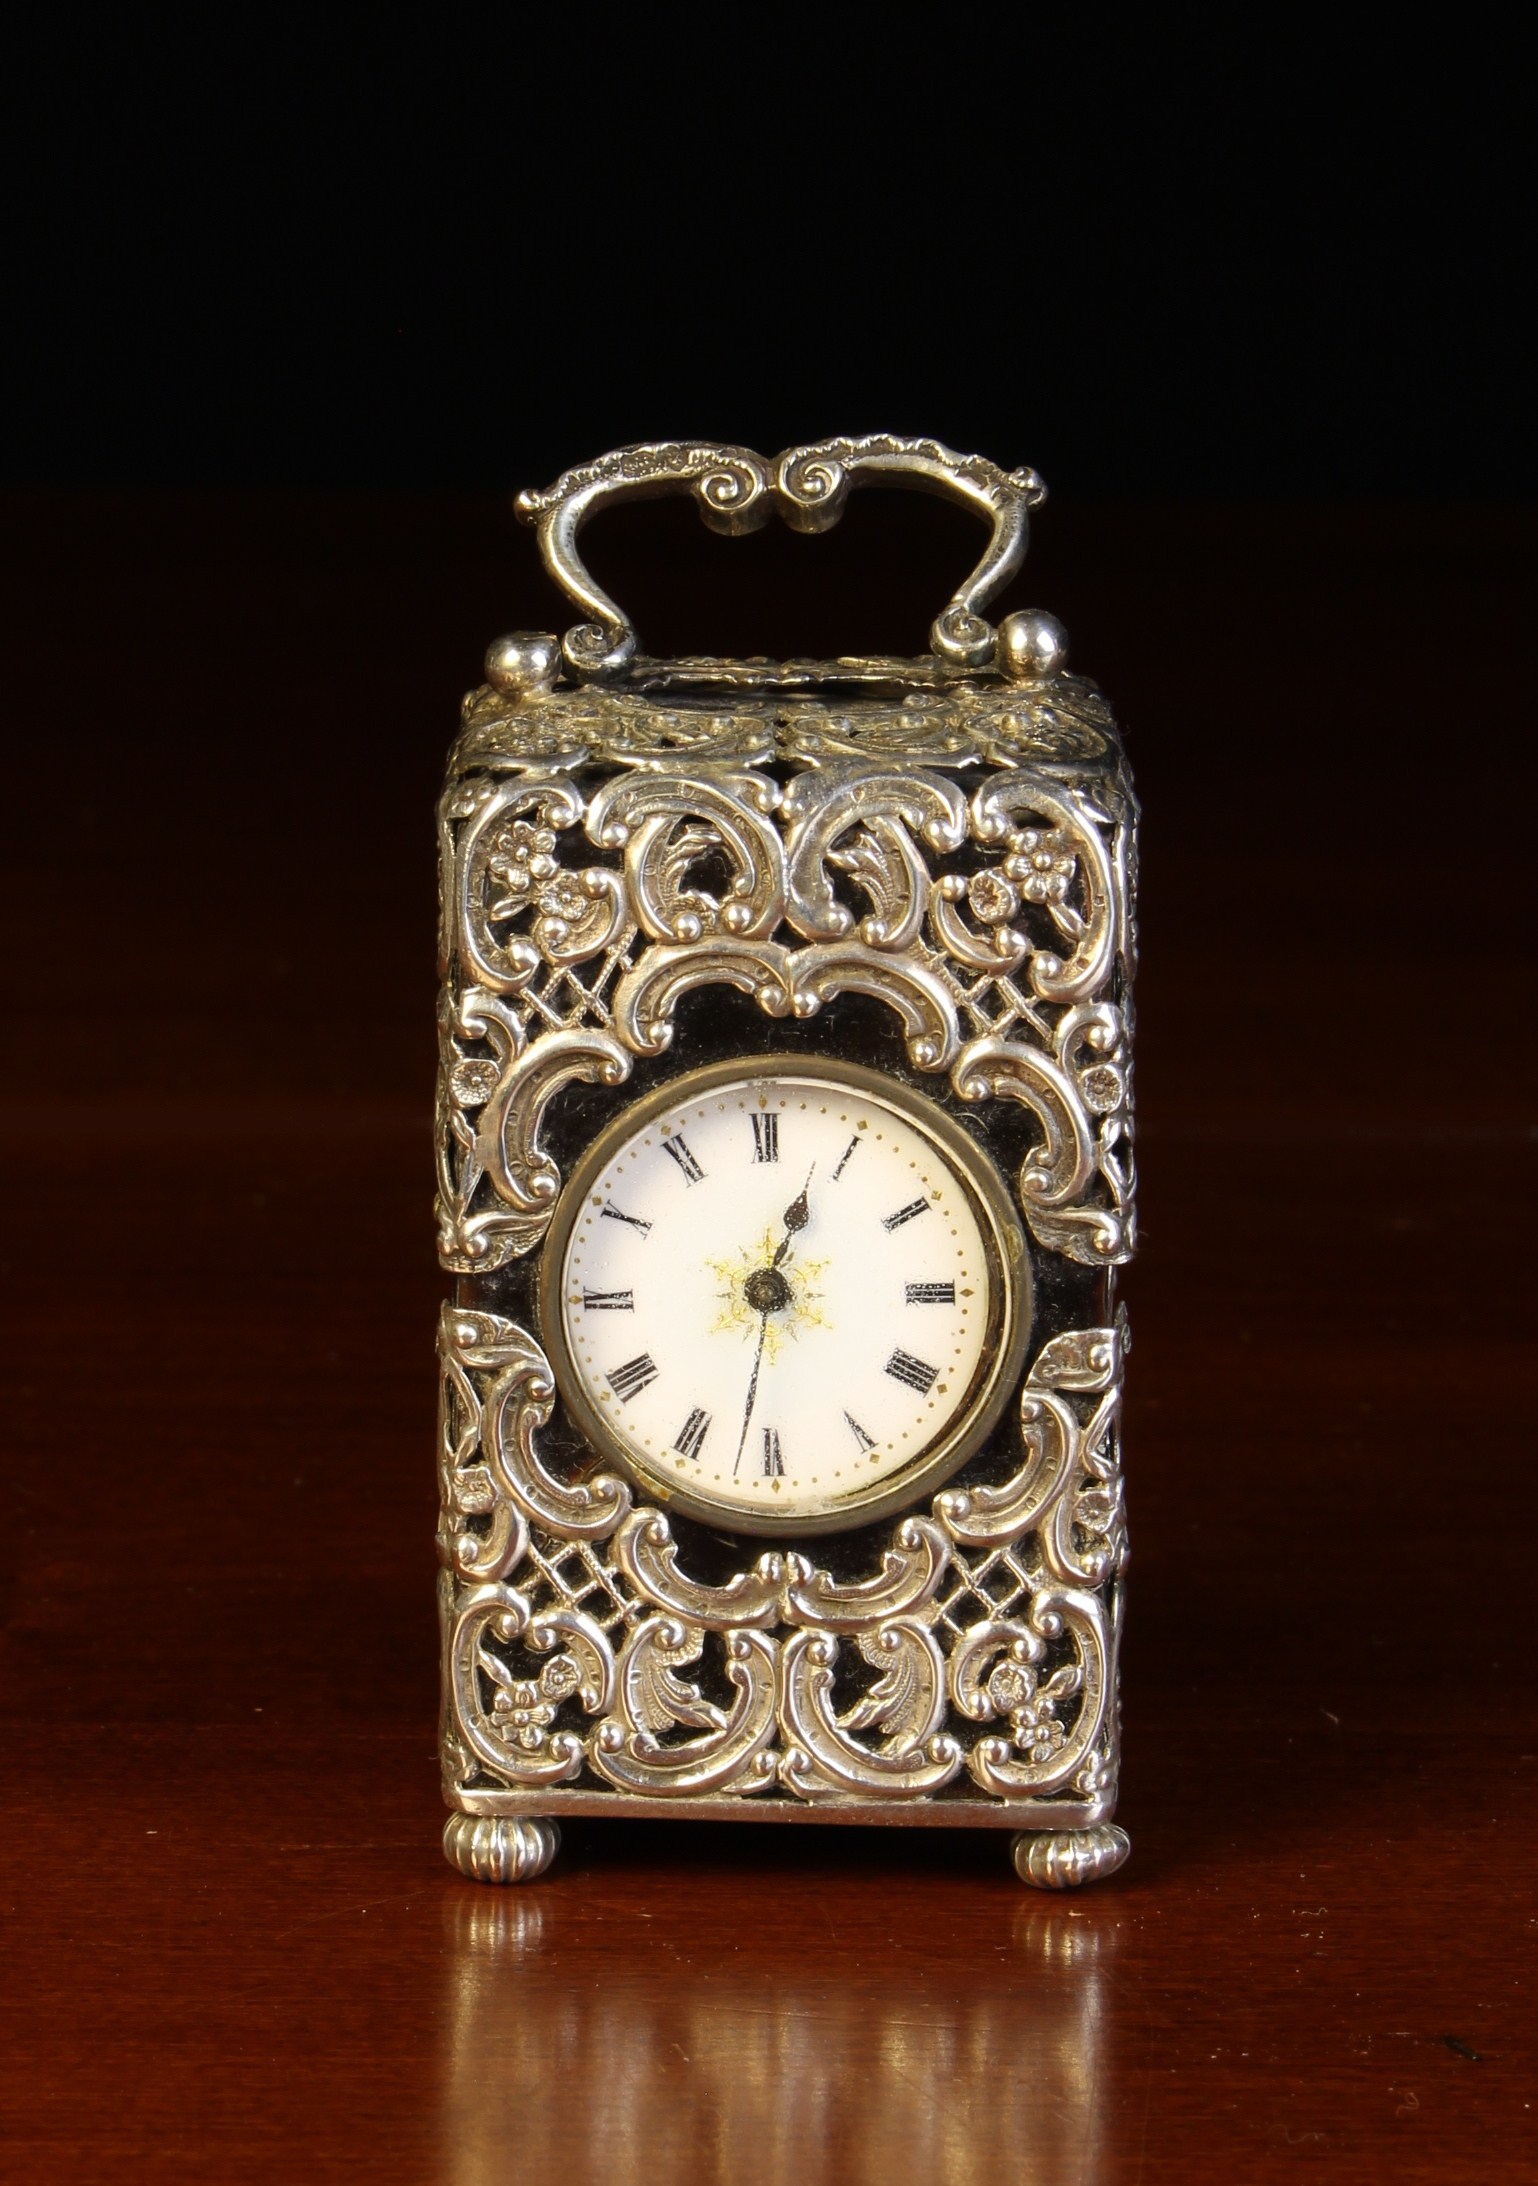 A Small Victorian Silver Mounted Tortoiseshell Carriage Clock with hallmarks for London 1893. - Image 2 of 3